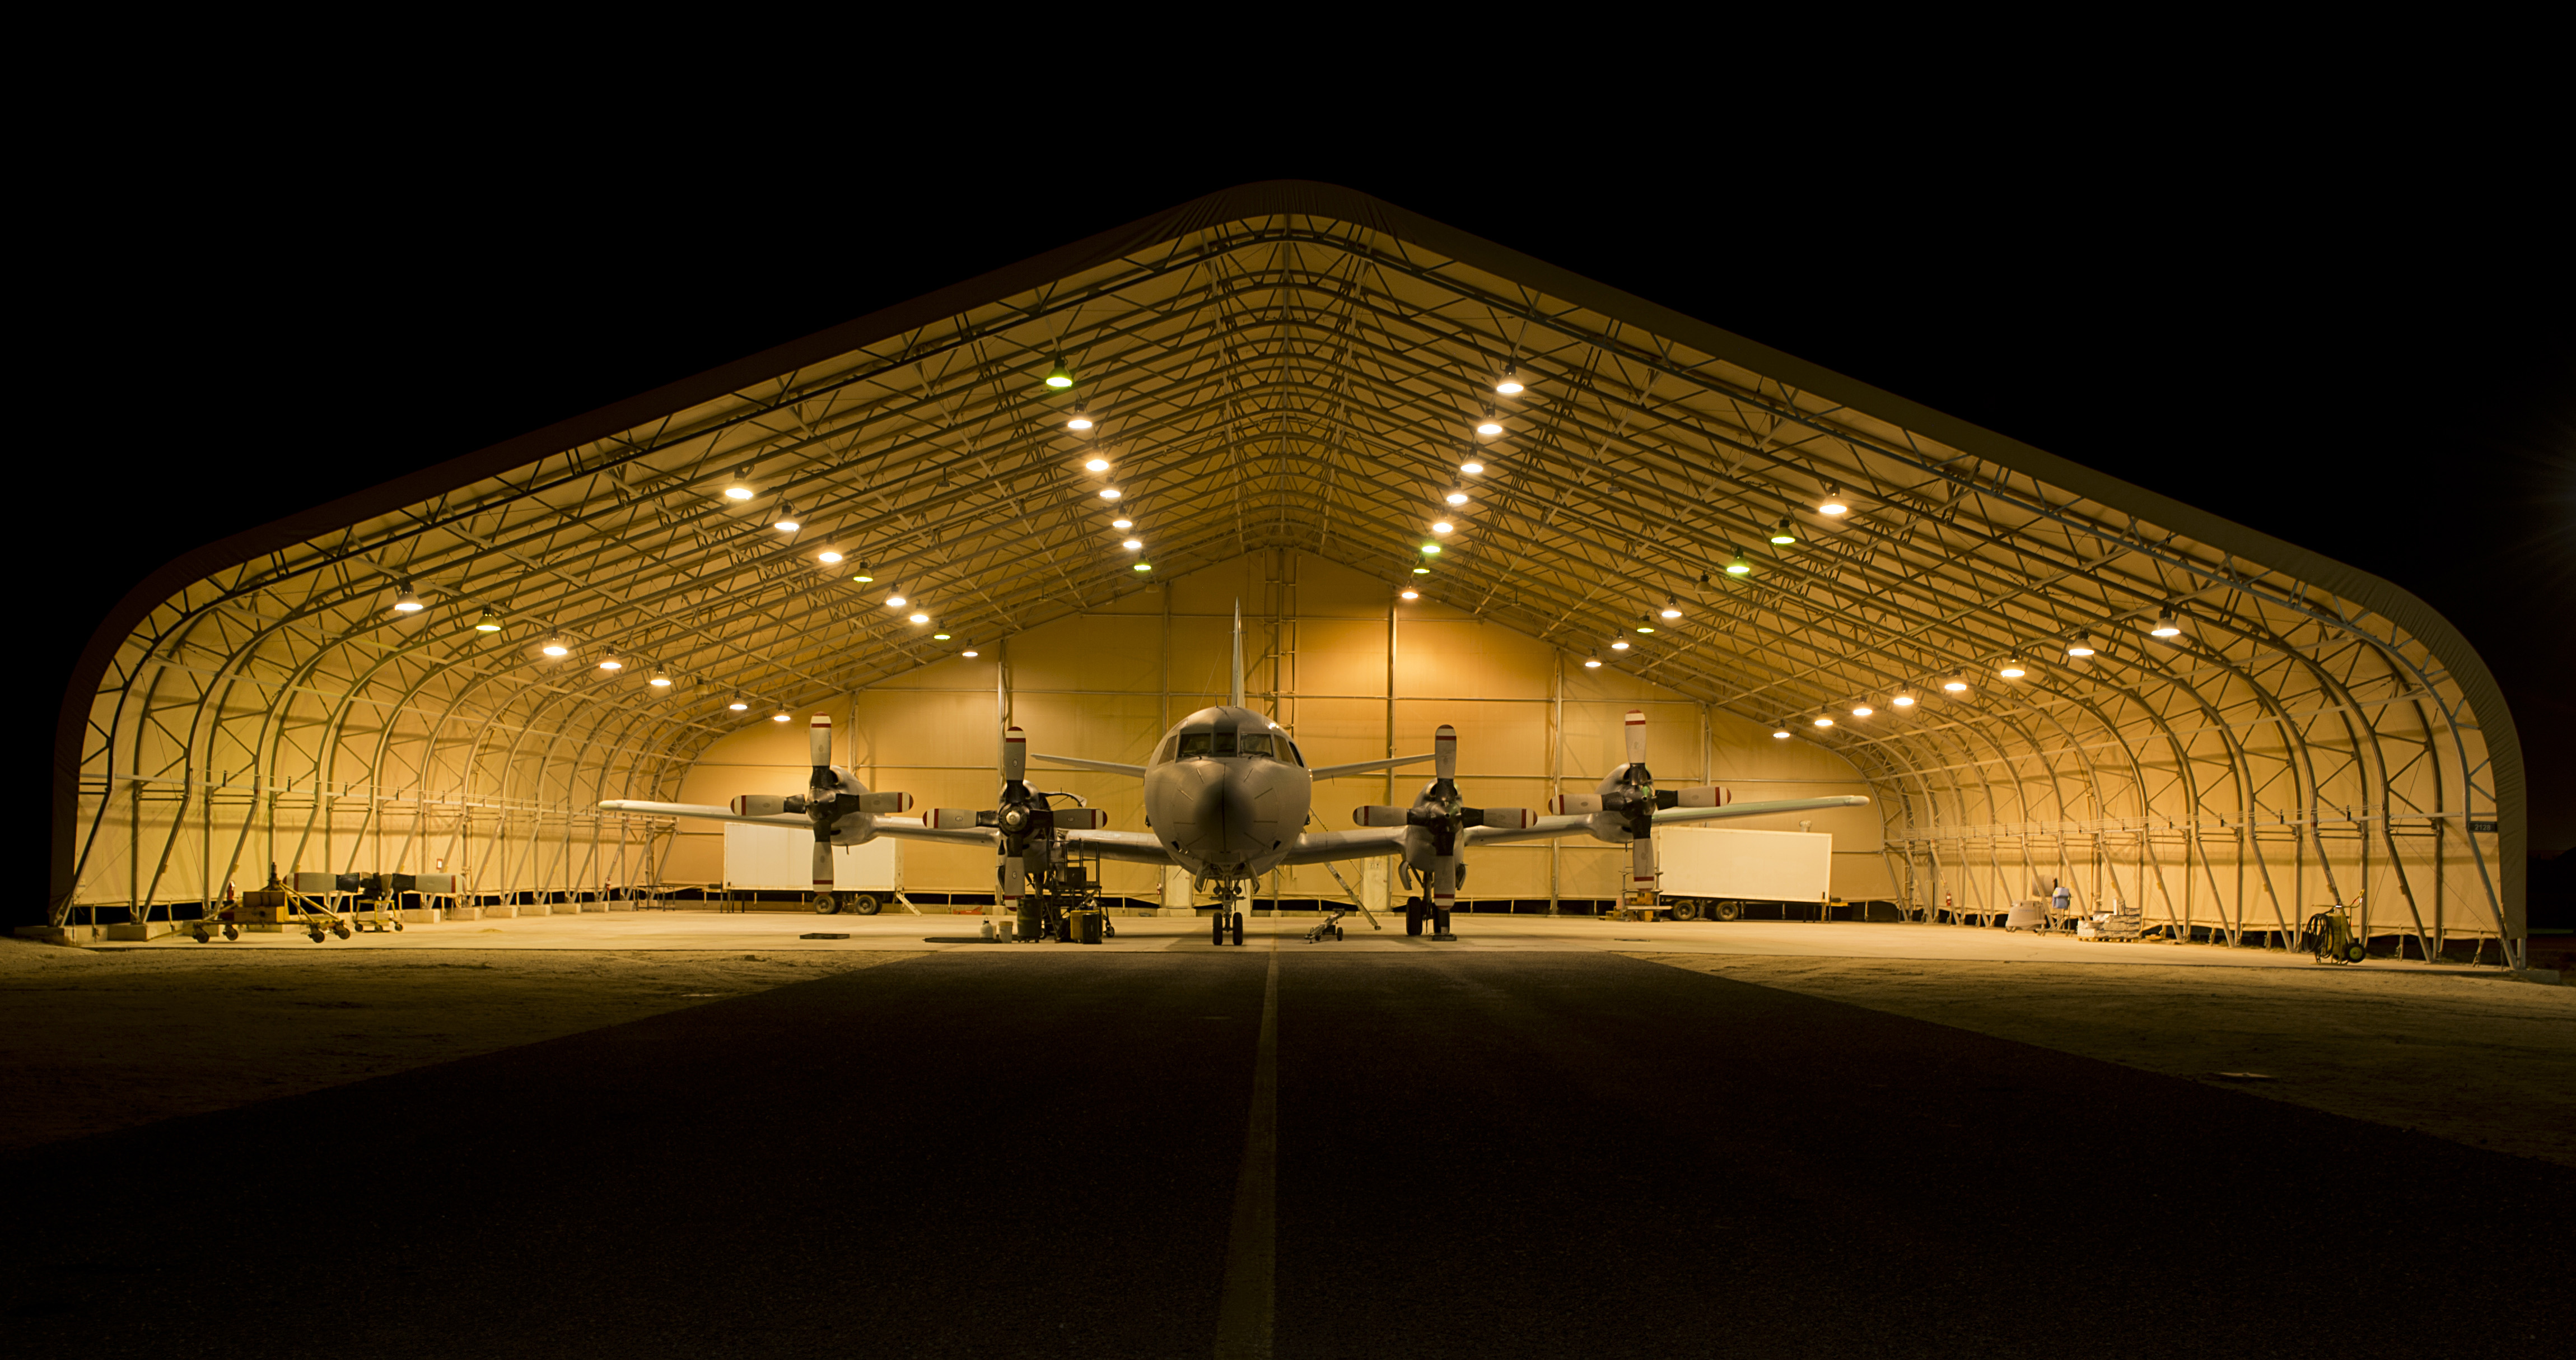 A Royal Canadian Air Force CP-140 Aurora aircraft awaits its next mission in Kuwait during Operation Impact.